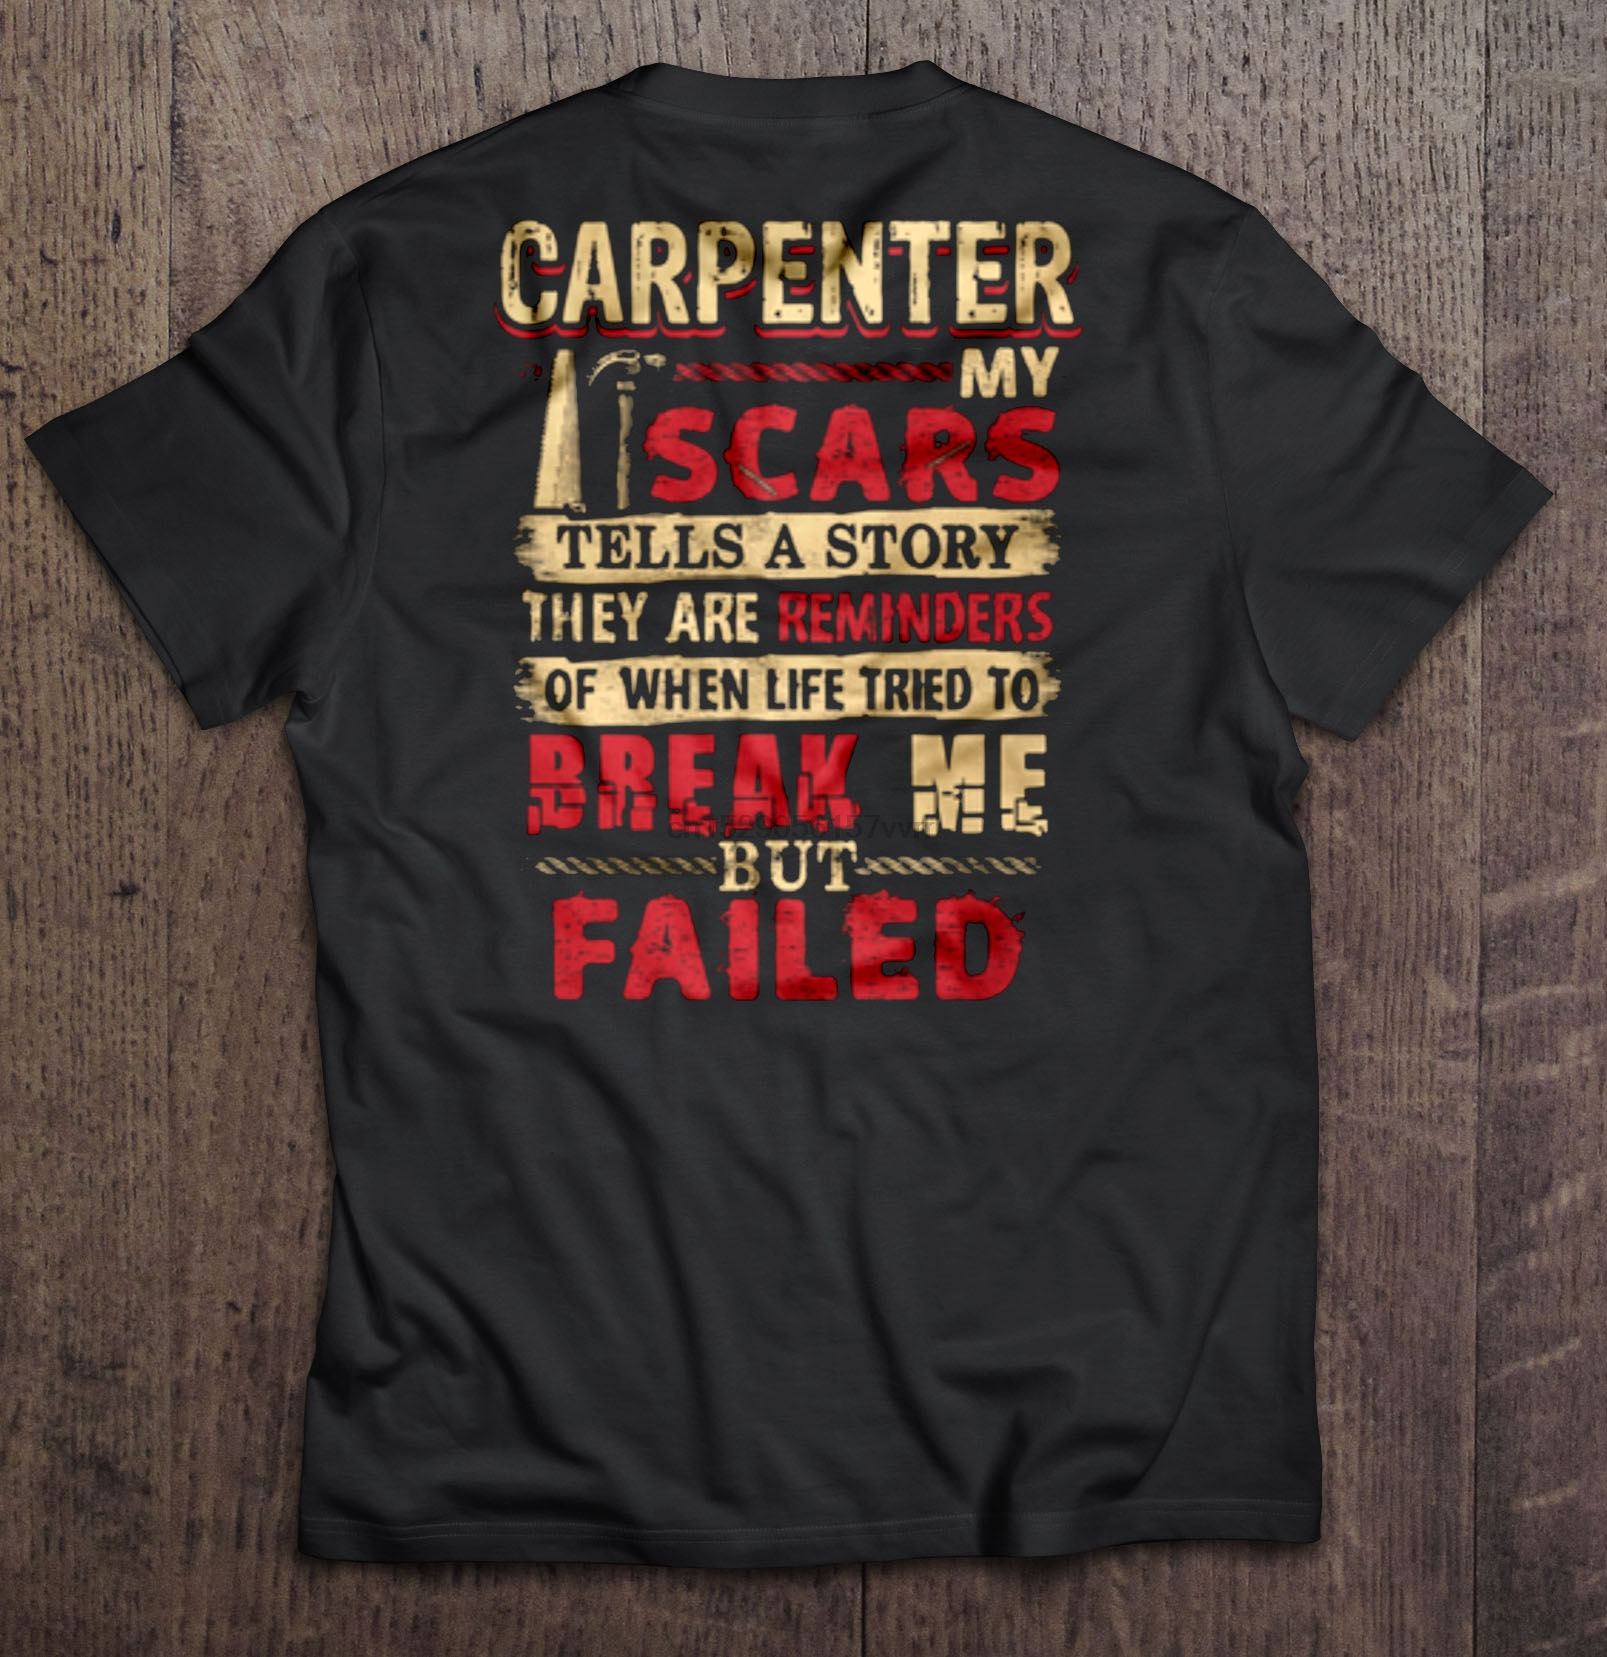 Carpenter My Scars Tells A Story T Shirt Carpenter Tshirt Design